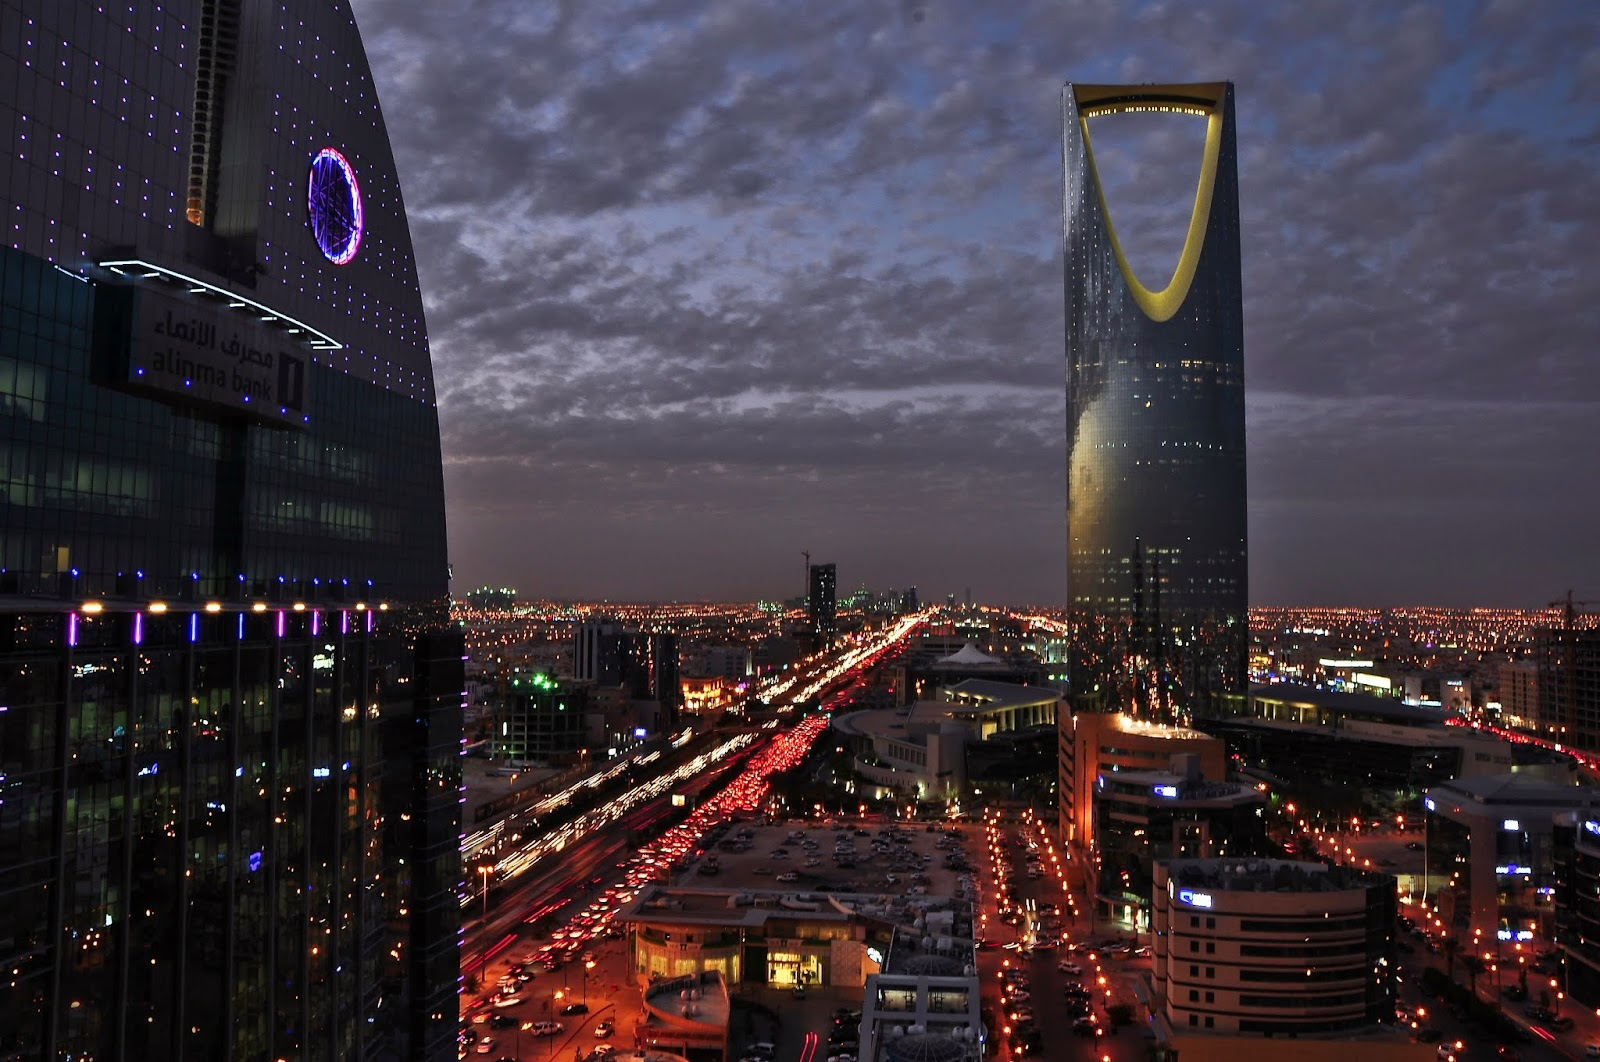 Riyadh_is_among_the_Top_50_Safest_Cities_of_the_World